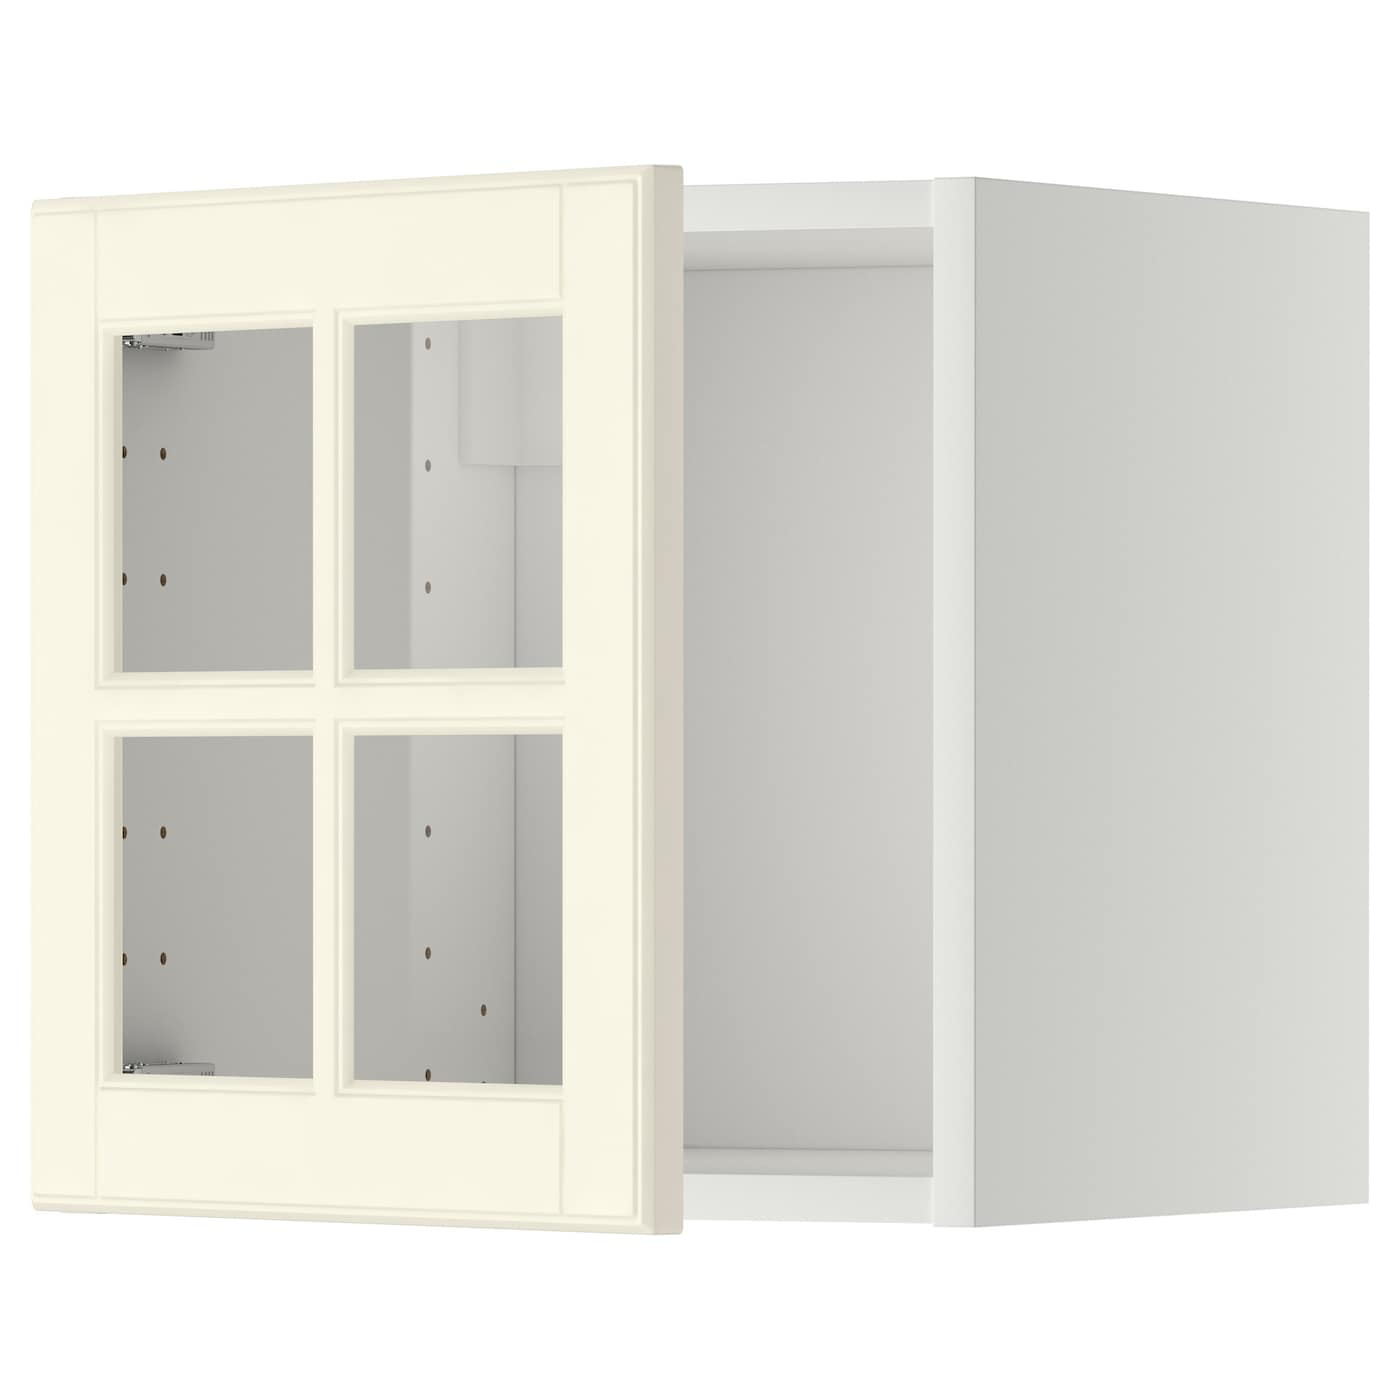 Metod wall cabinet with glass door white bodbyn off white - Ikea bagno pensili ...